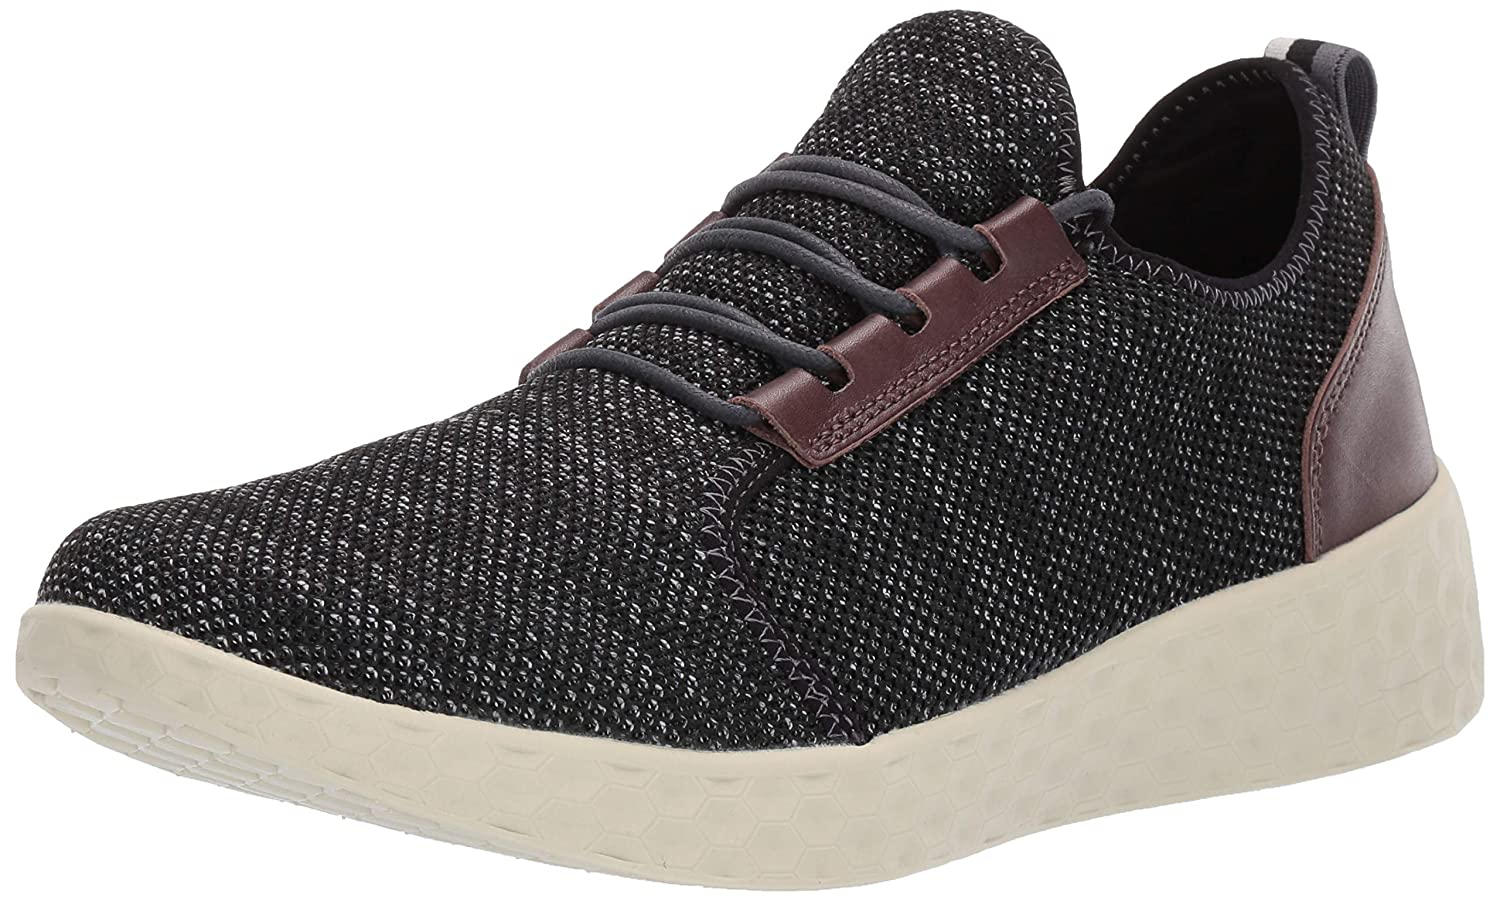 71d72a075a499 Dr. Scholl's Shoes Men's Revive Sneaker, Black eco Knit, 11 M US